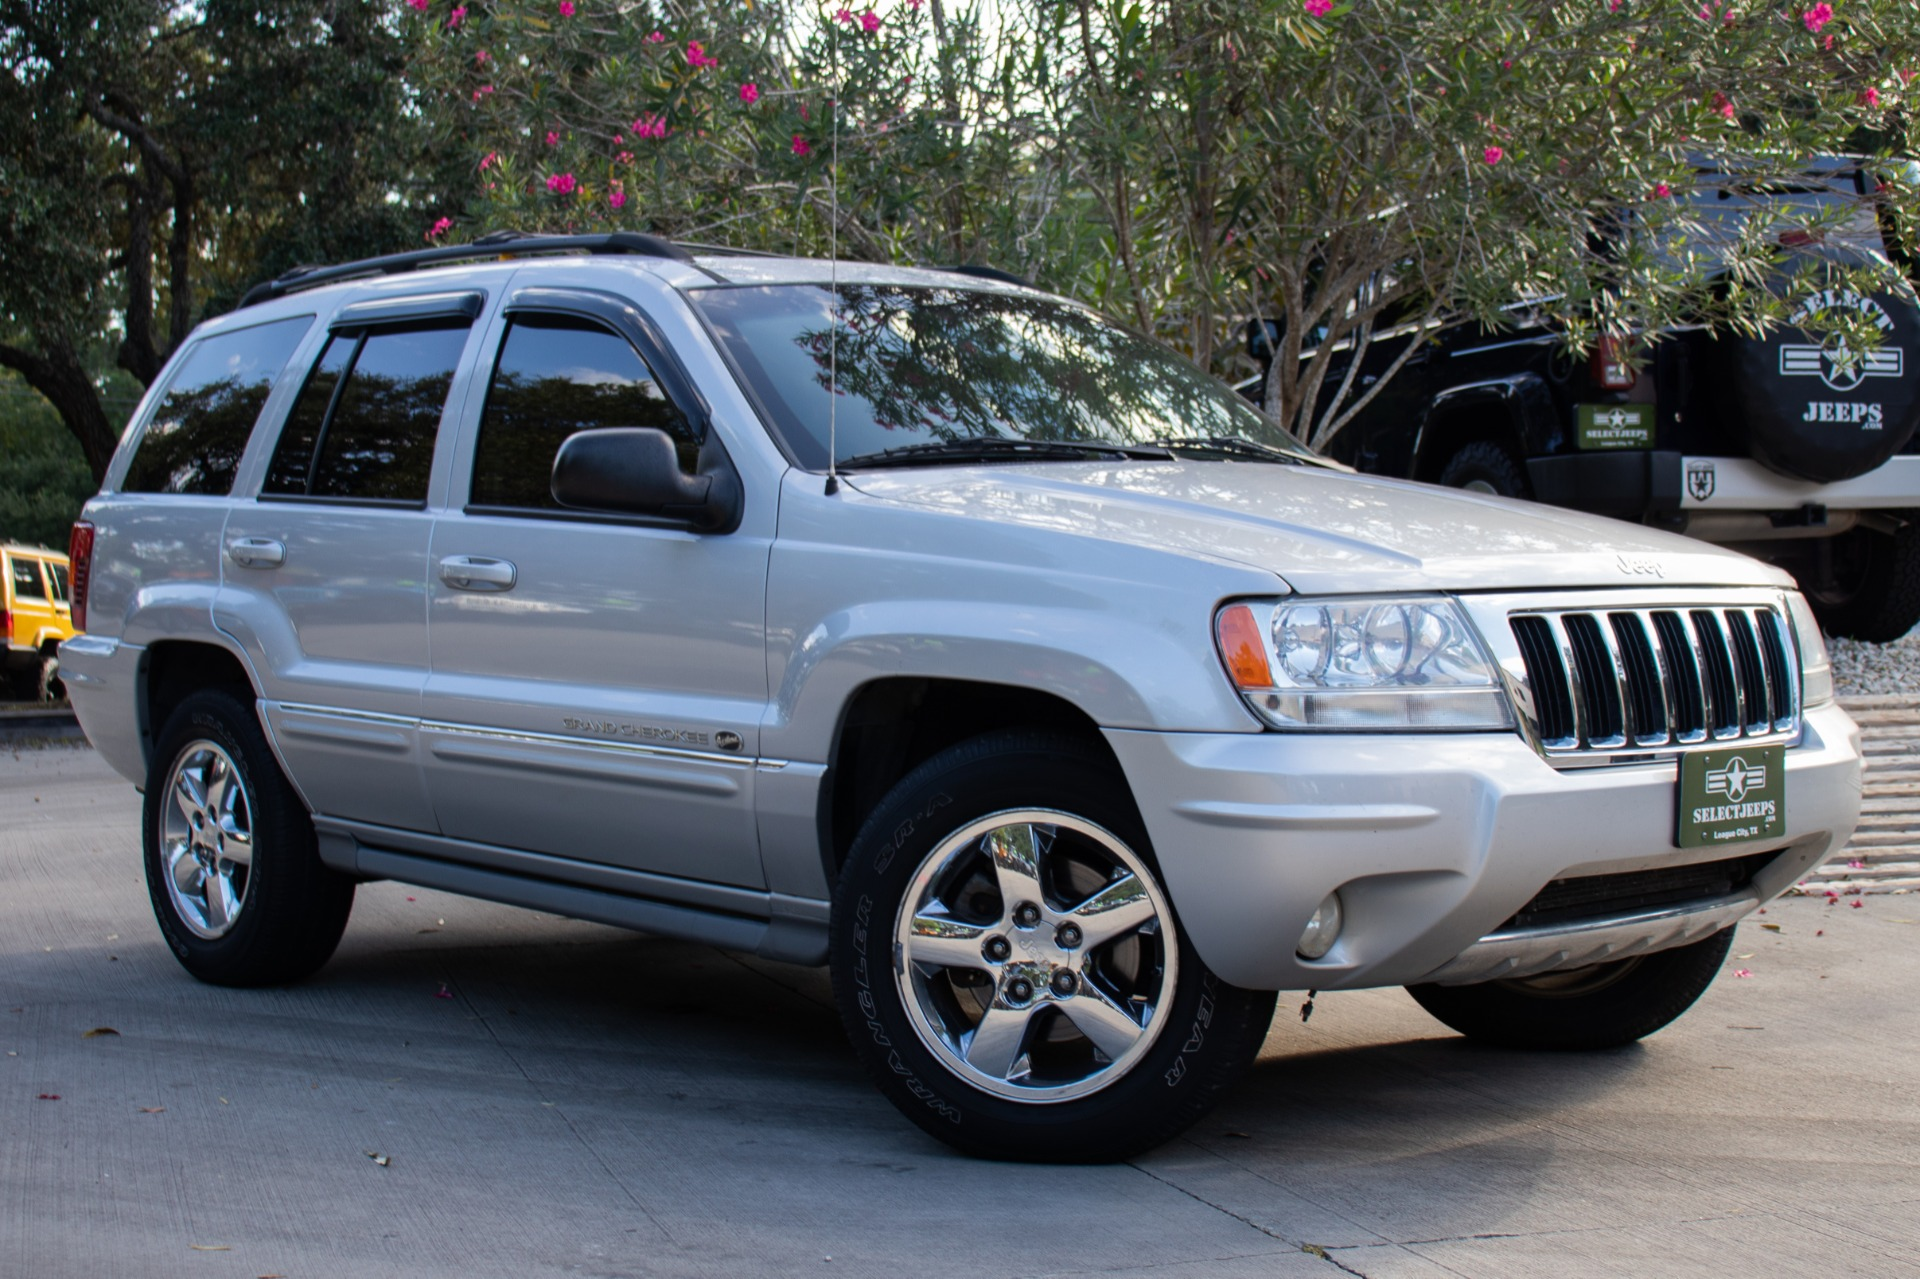 Used 2004 Jeep Grand Cherokee Overland For Sale 8 995 Select Jeeps Inc Stock 203992